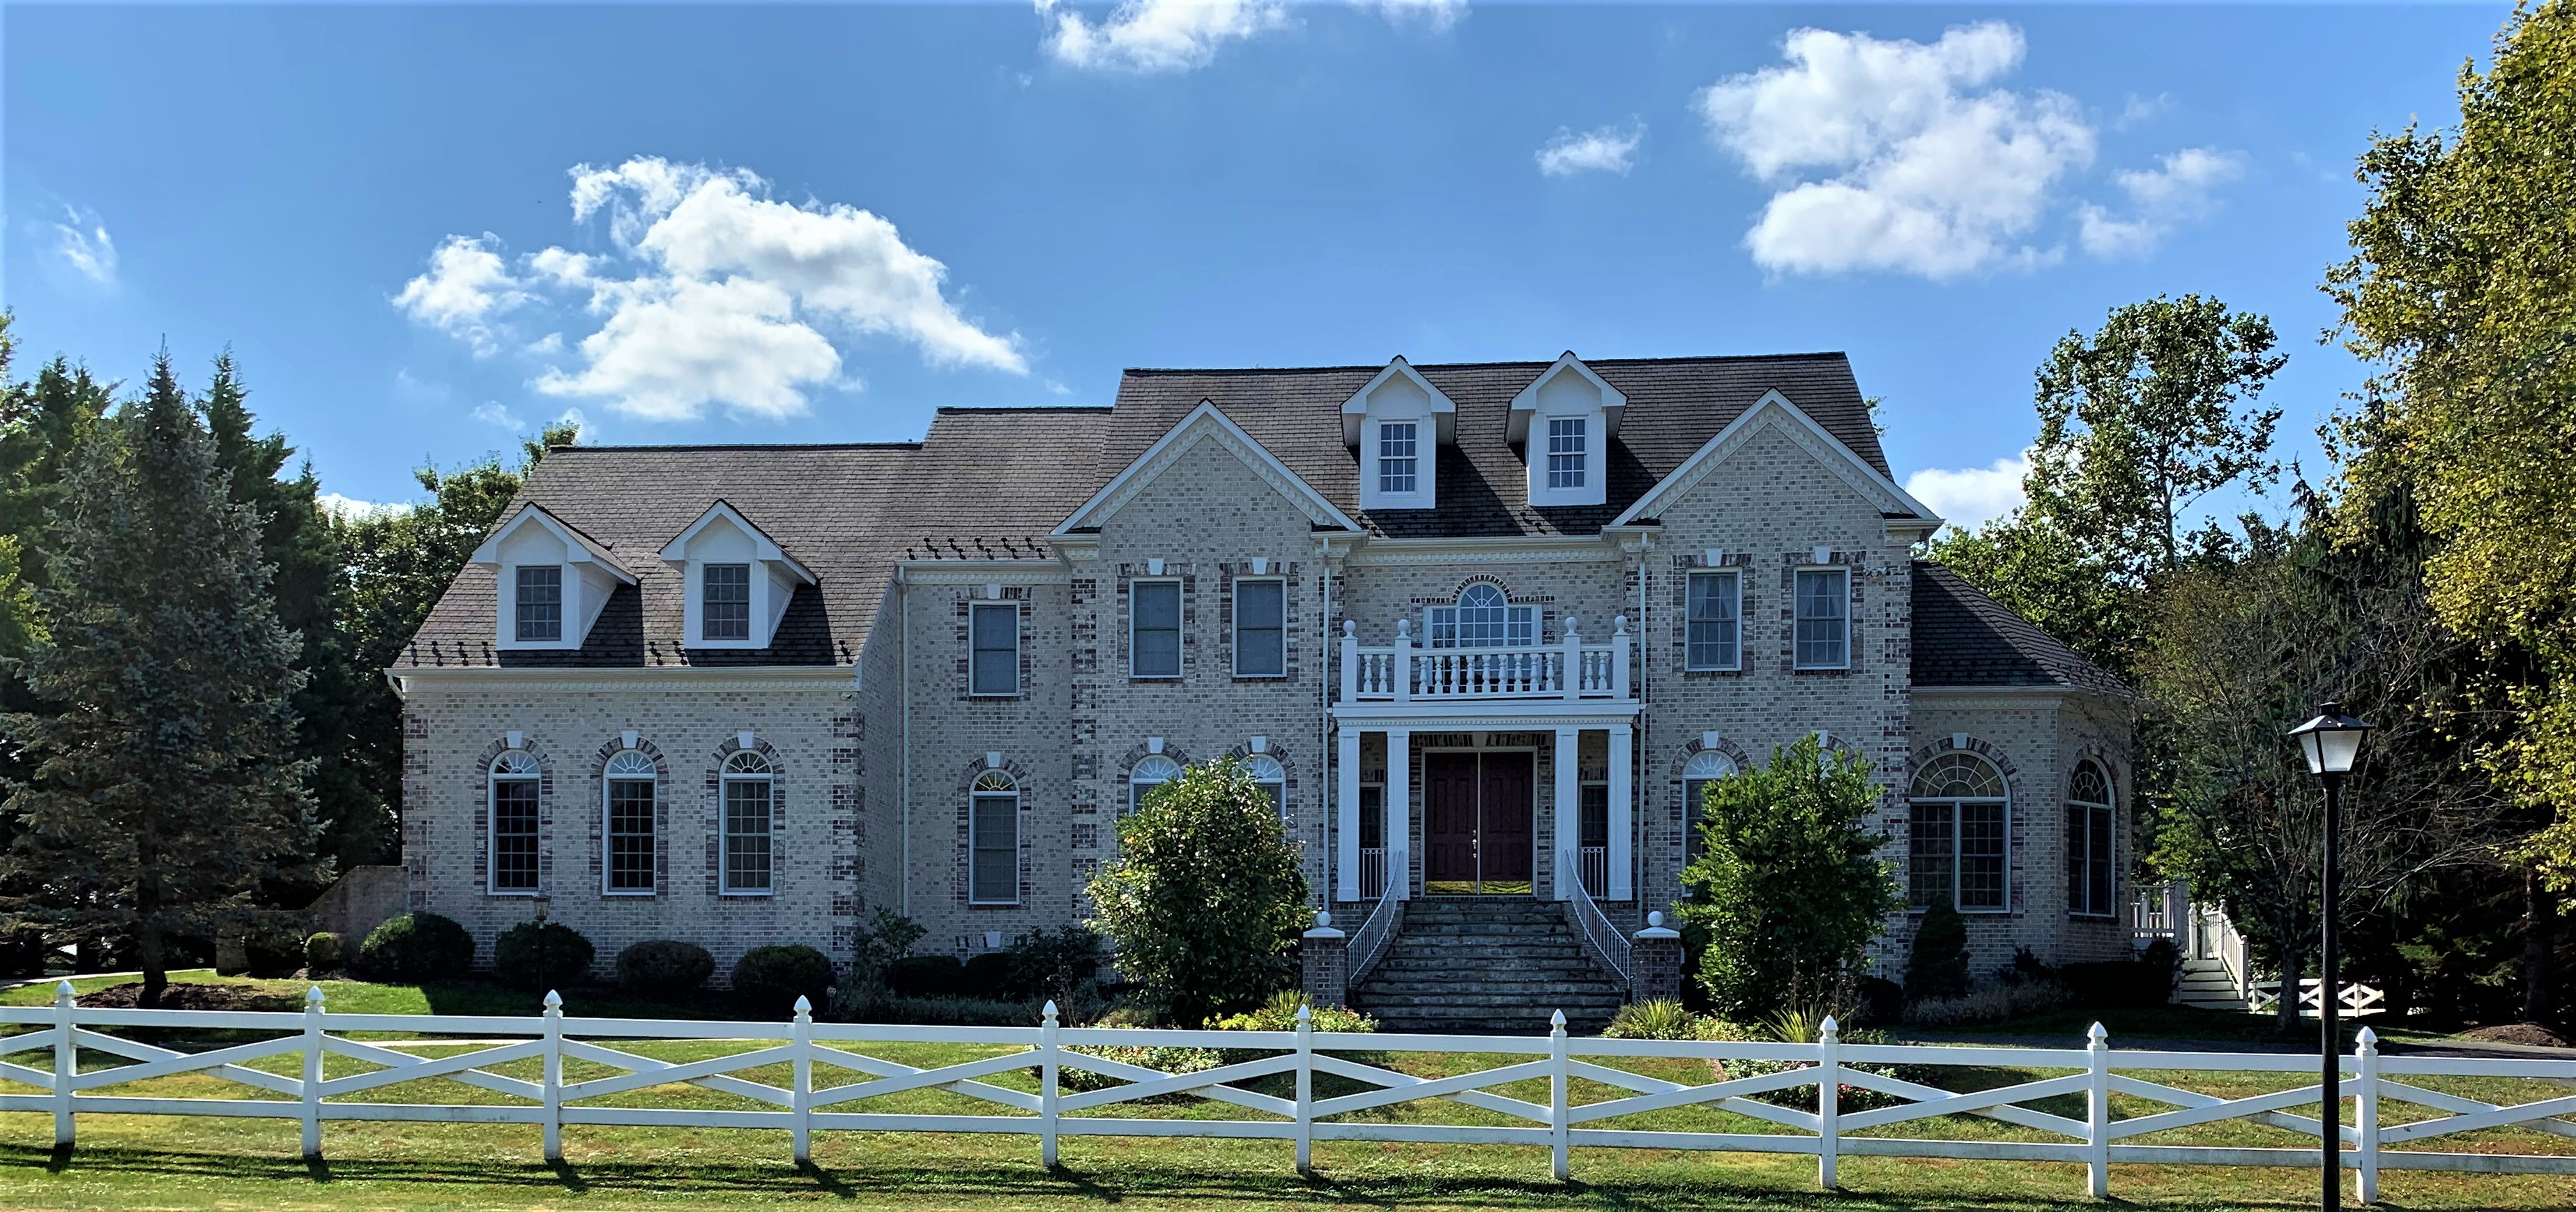 Potomac, MD Luxury Homes For Sale. Brushwood Way. Washington, DC Metro Area Real Estate. Artyom Shmatko Realtor